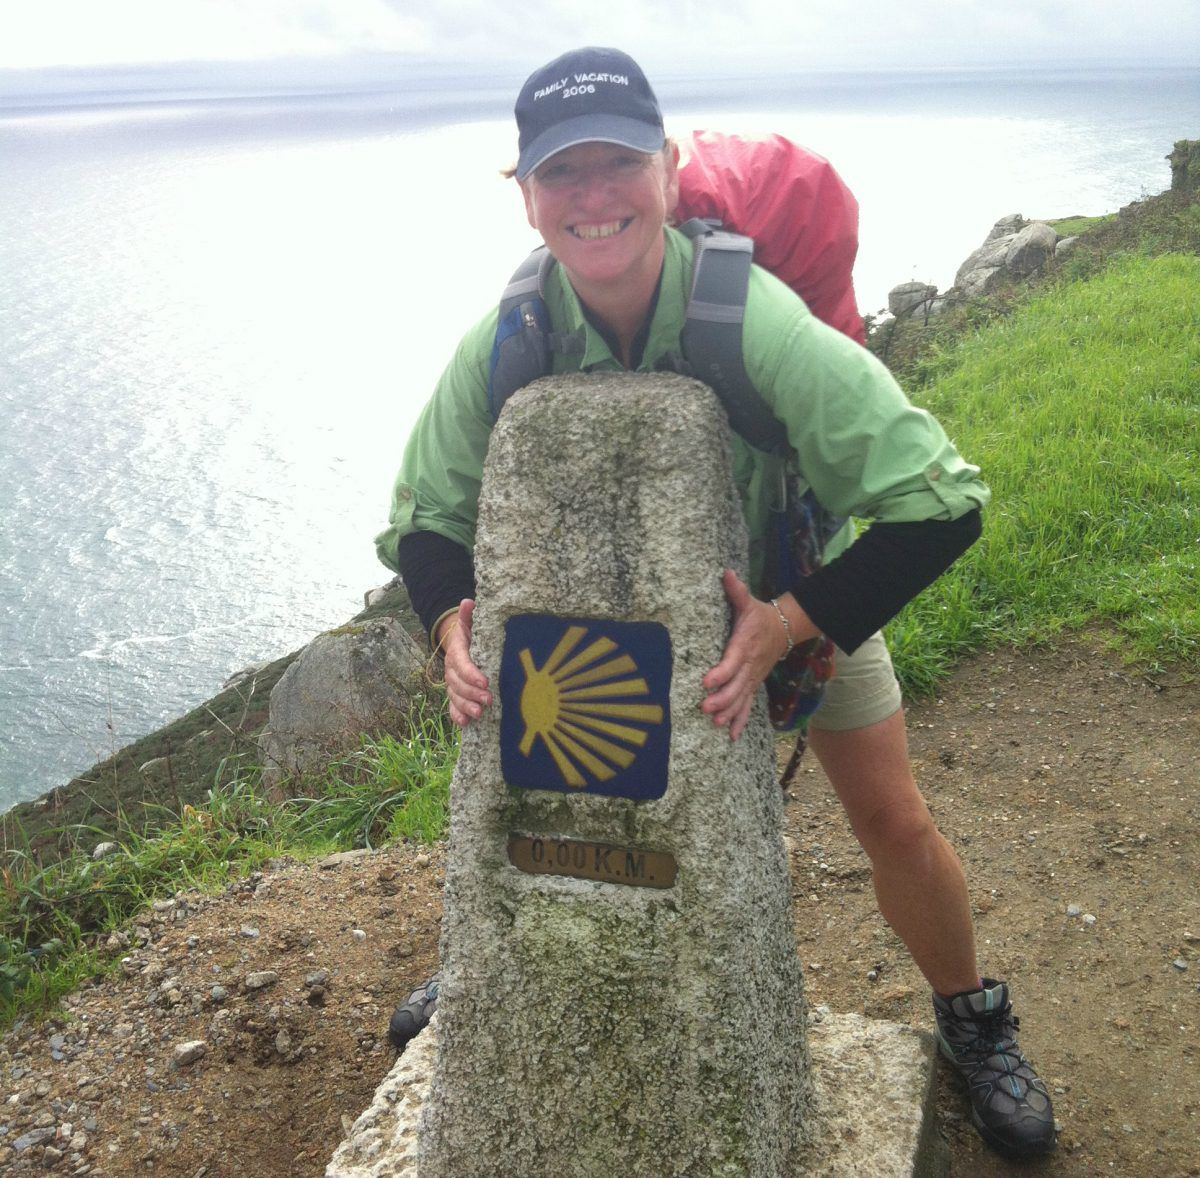 Glenyce Johnson – Wandering the World Co-Founder on the French Camino